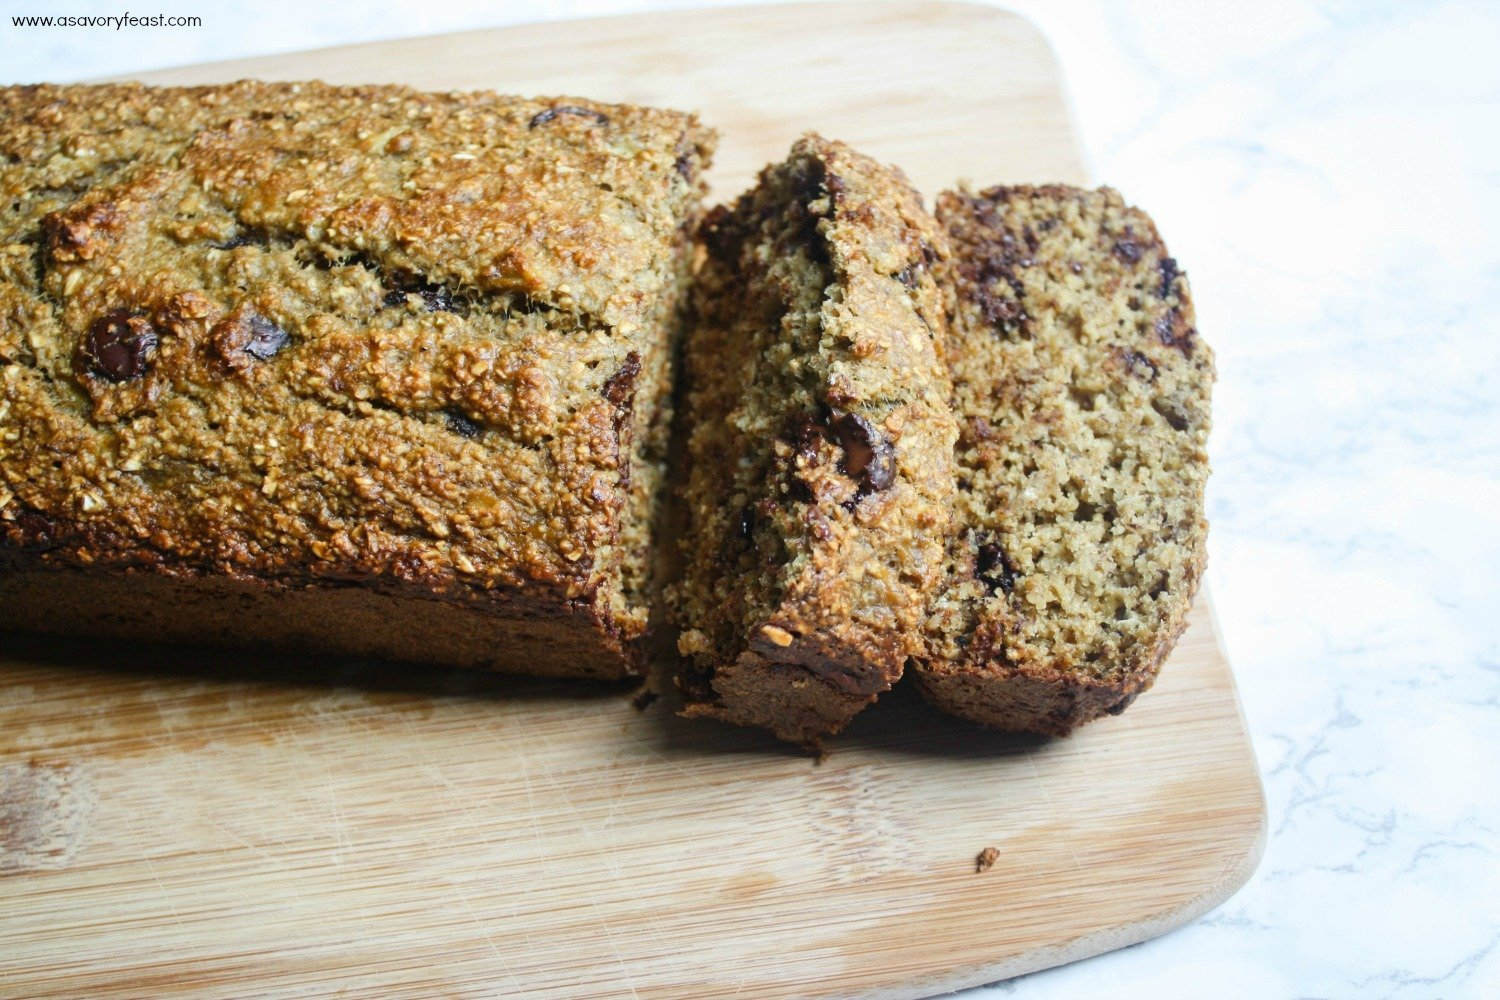 This healthy Banana Bread is gluten free and low in sugar! It's perfect for breakfast or a filling snack.